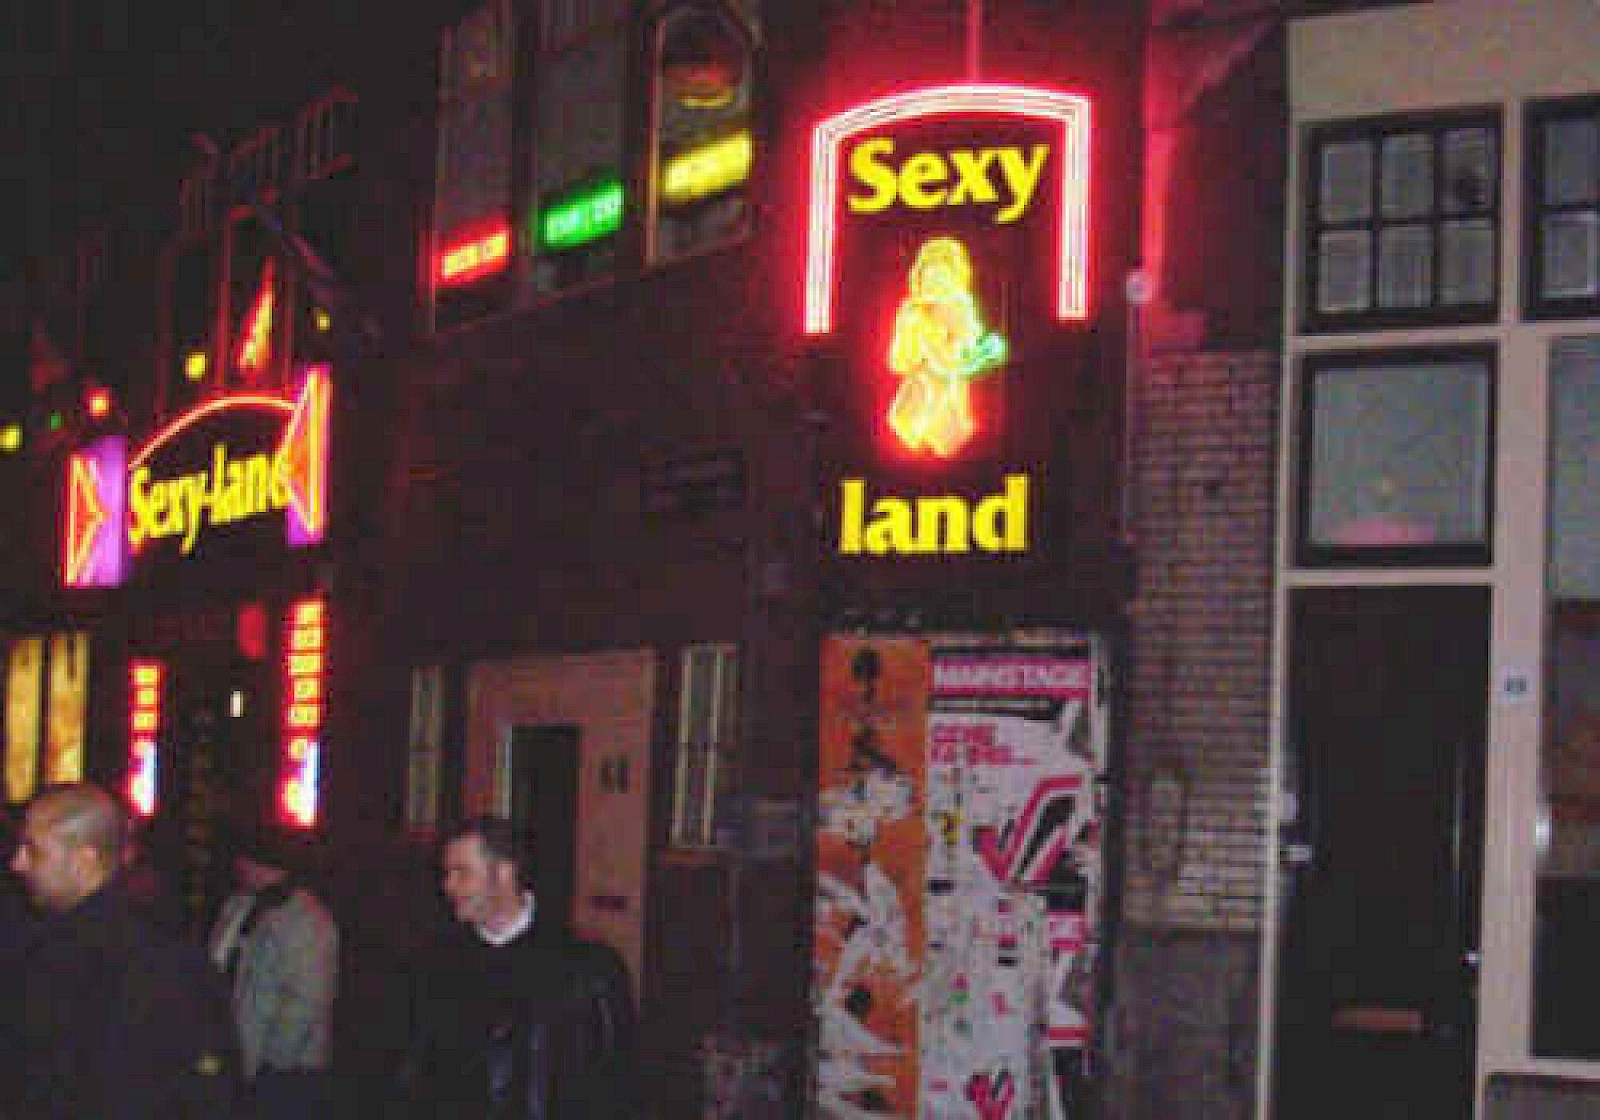 Image - The original Sexy-land location